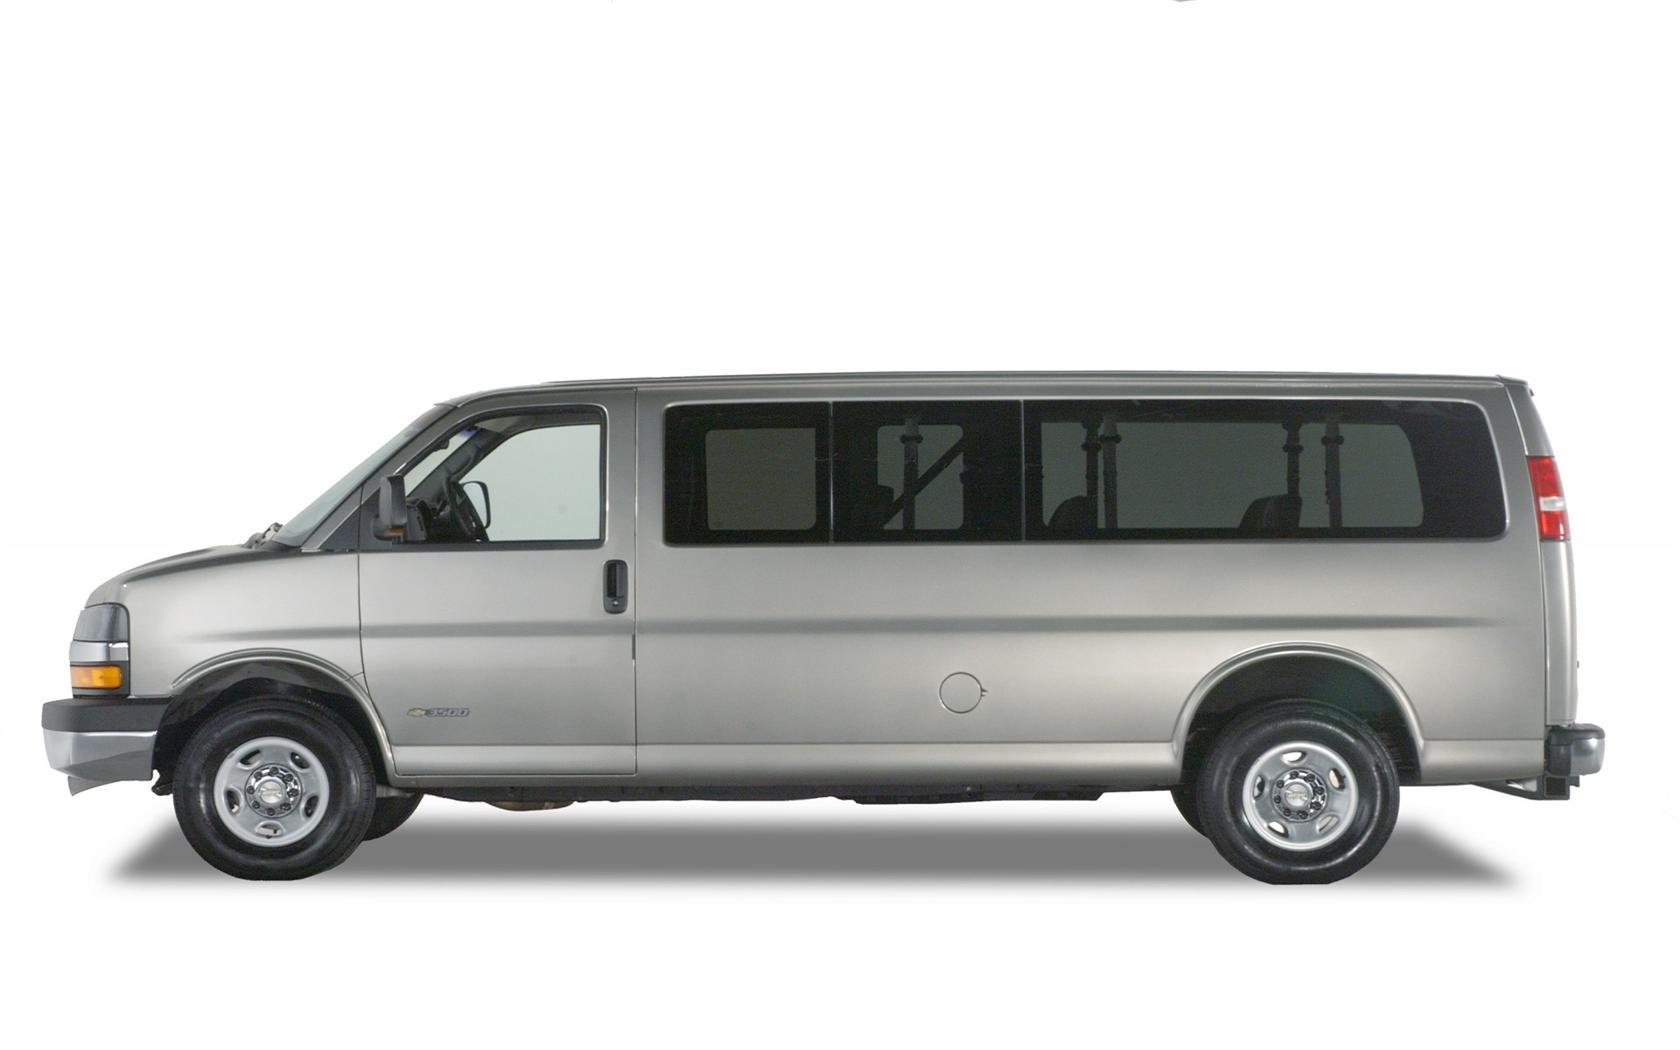 2000 Chevrolet Express Image 4